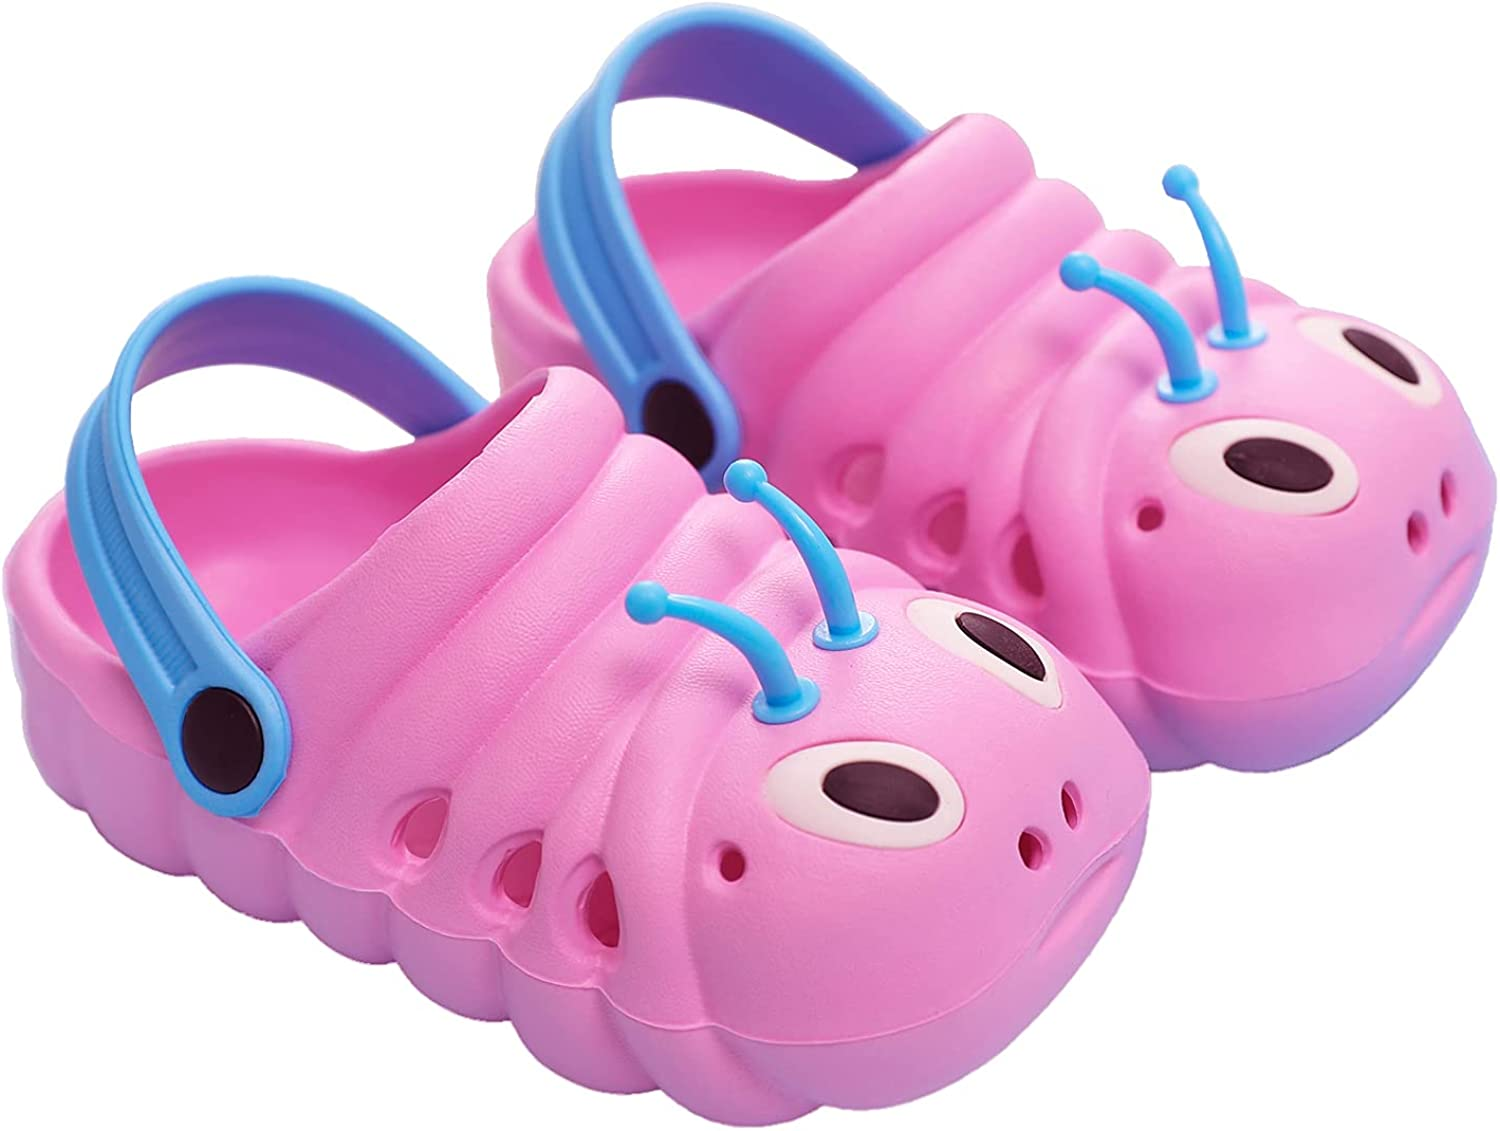 JUXI 25% OFF Toddler Sandals Baby Boys Cartoon Max 76% OFF Clogs Girls Mules Cute